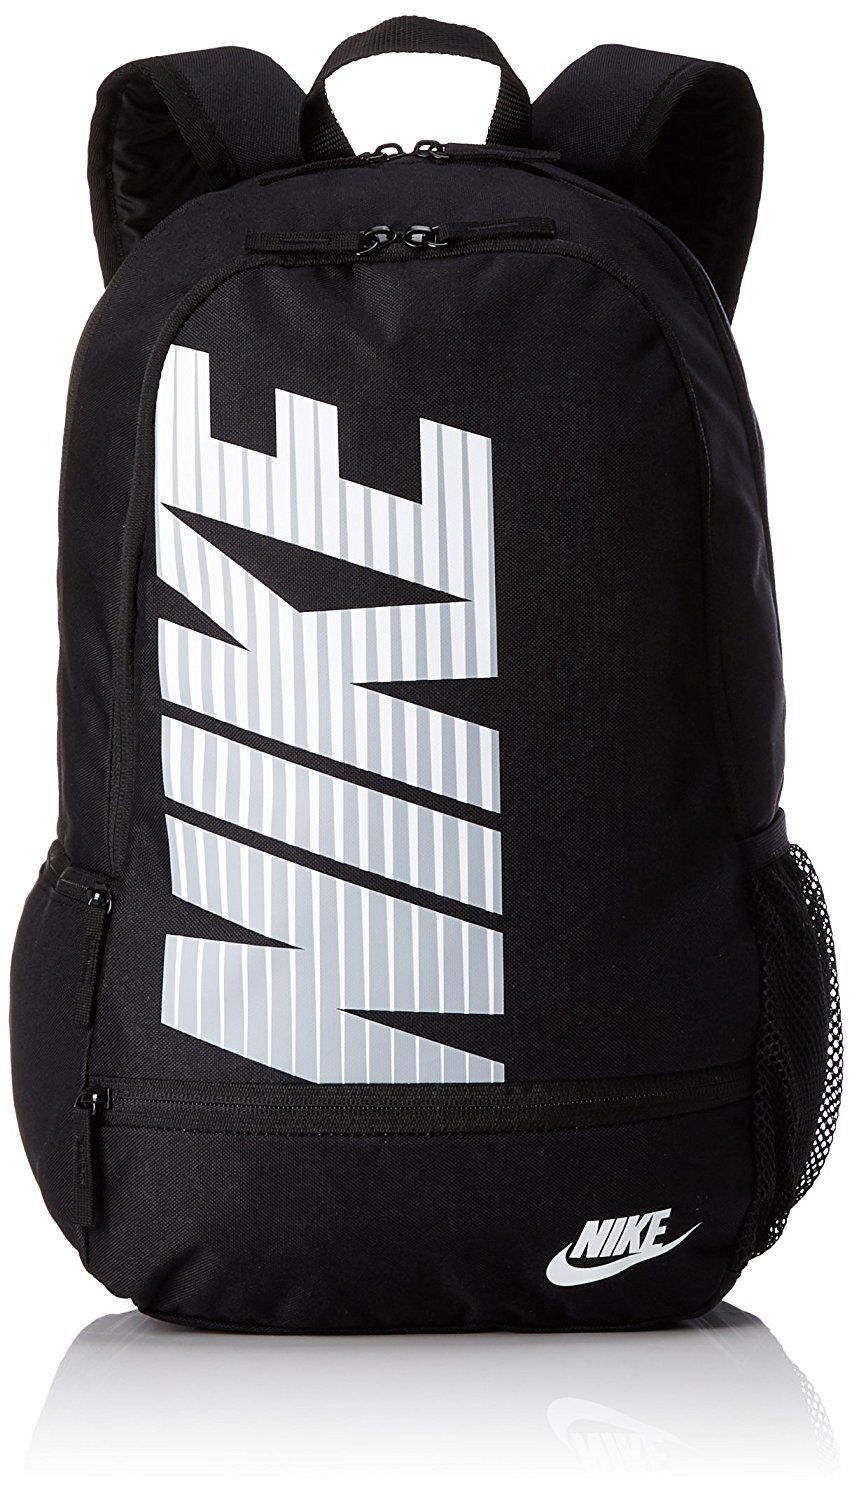 f468f75444fe Nike Classic North Backpack - Black White. Dimentions - 50 x 25 x 5 cm.  Capacity - 22 Litre. Amazon.co.uk